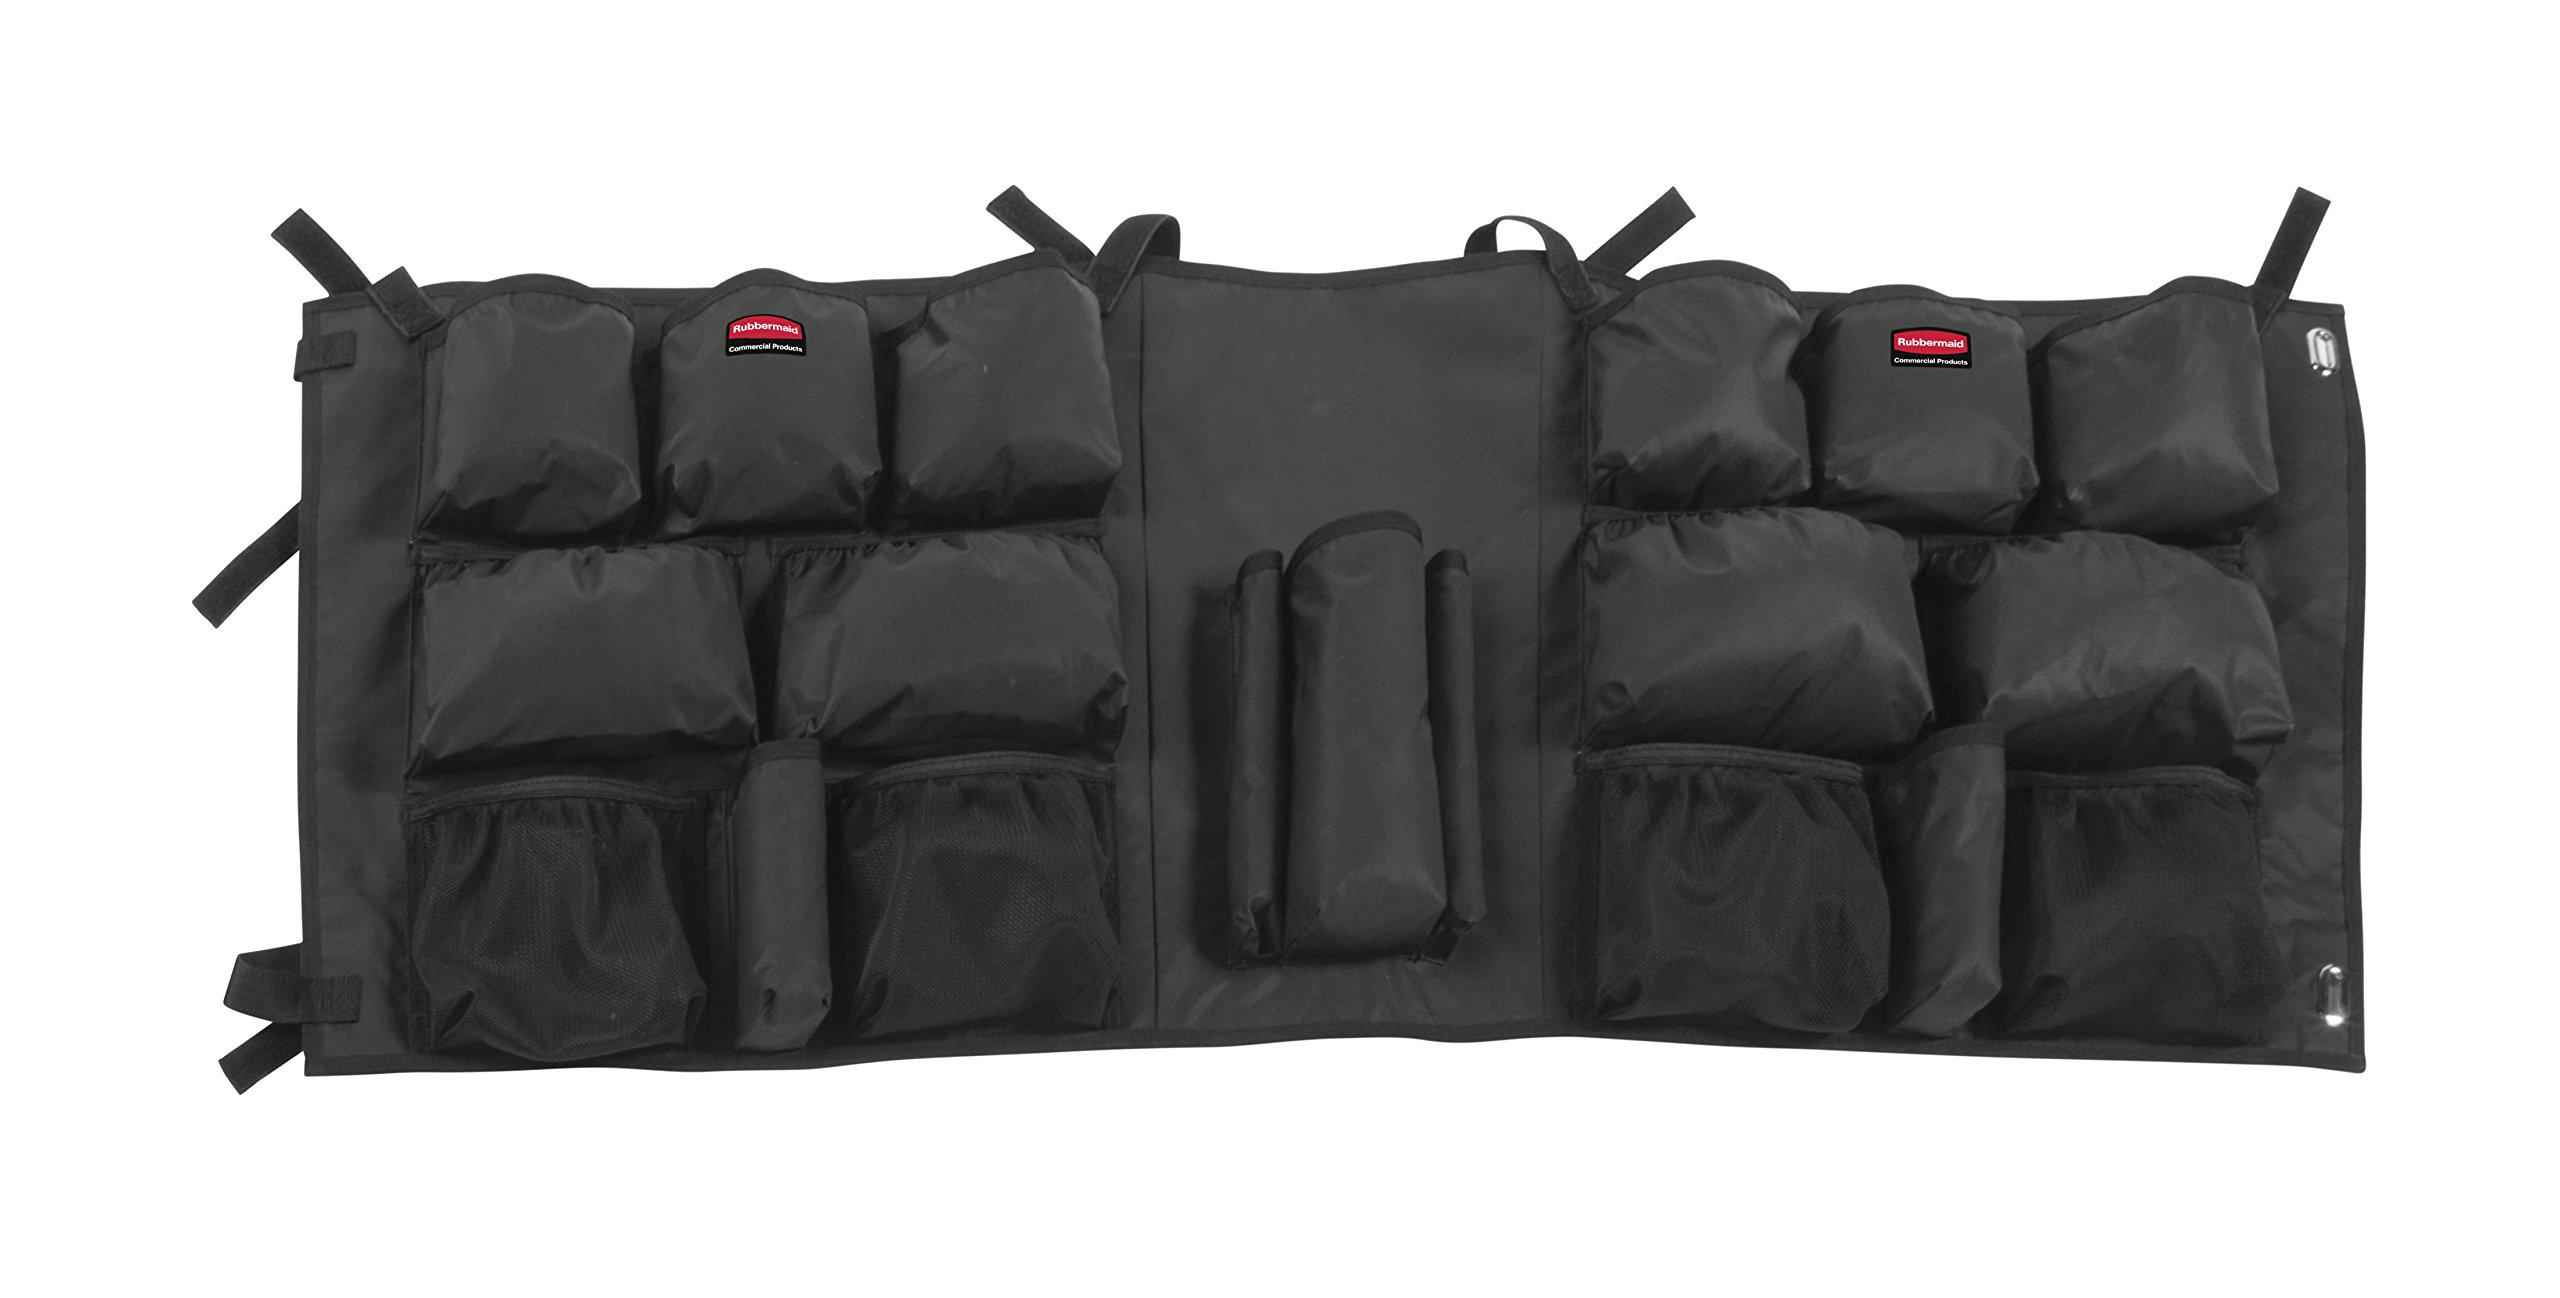 Rubbermaid Commercial Products 2032939 Slim Jim Caddy Bag for 23 gal, Black